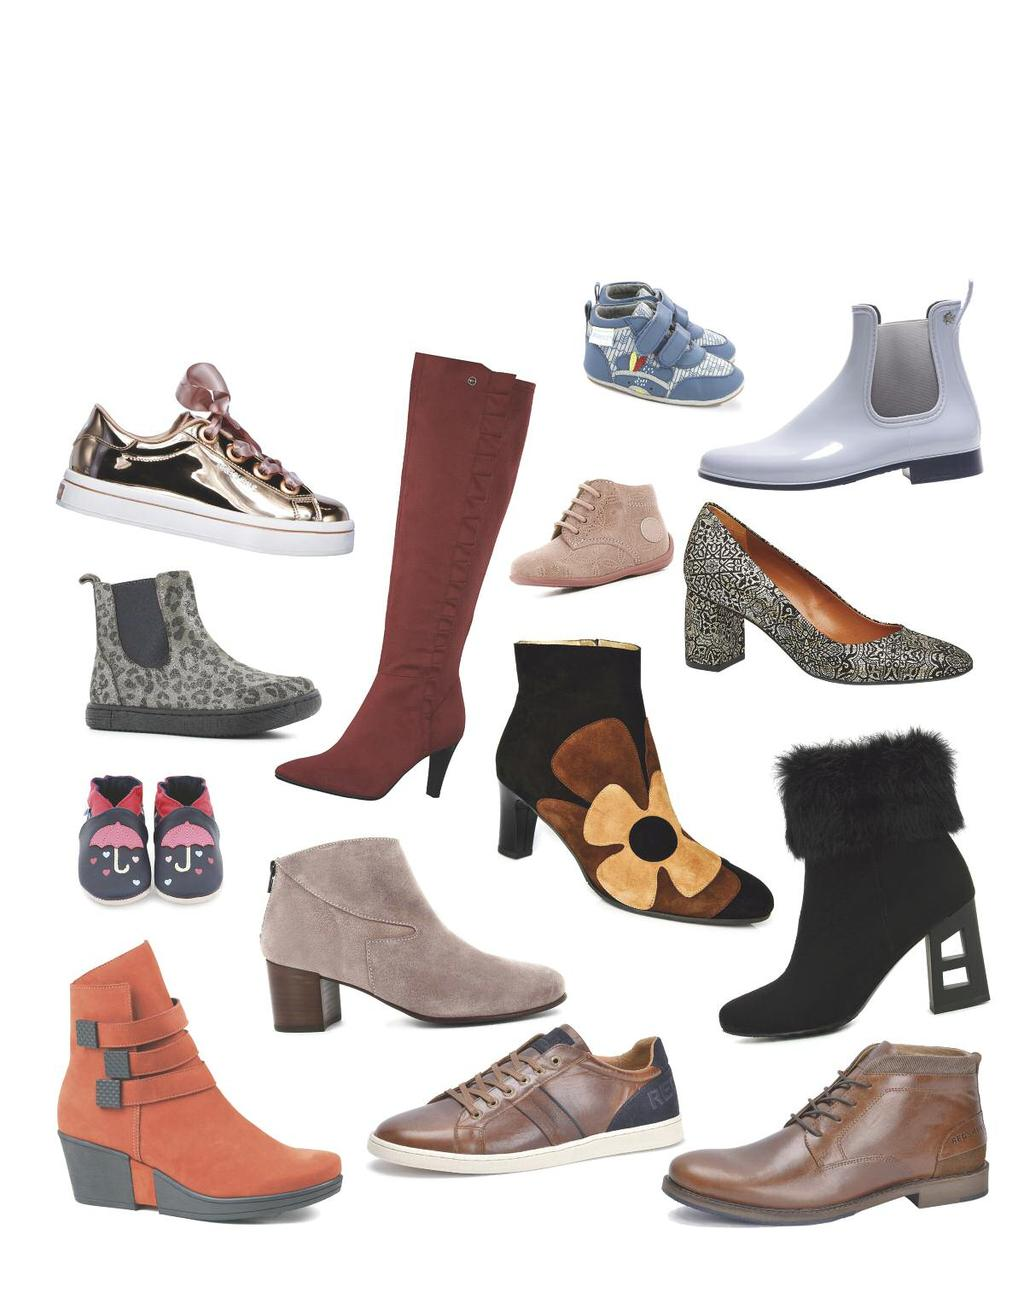 chaussures fargeot thiviers